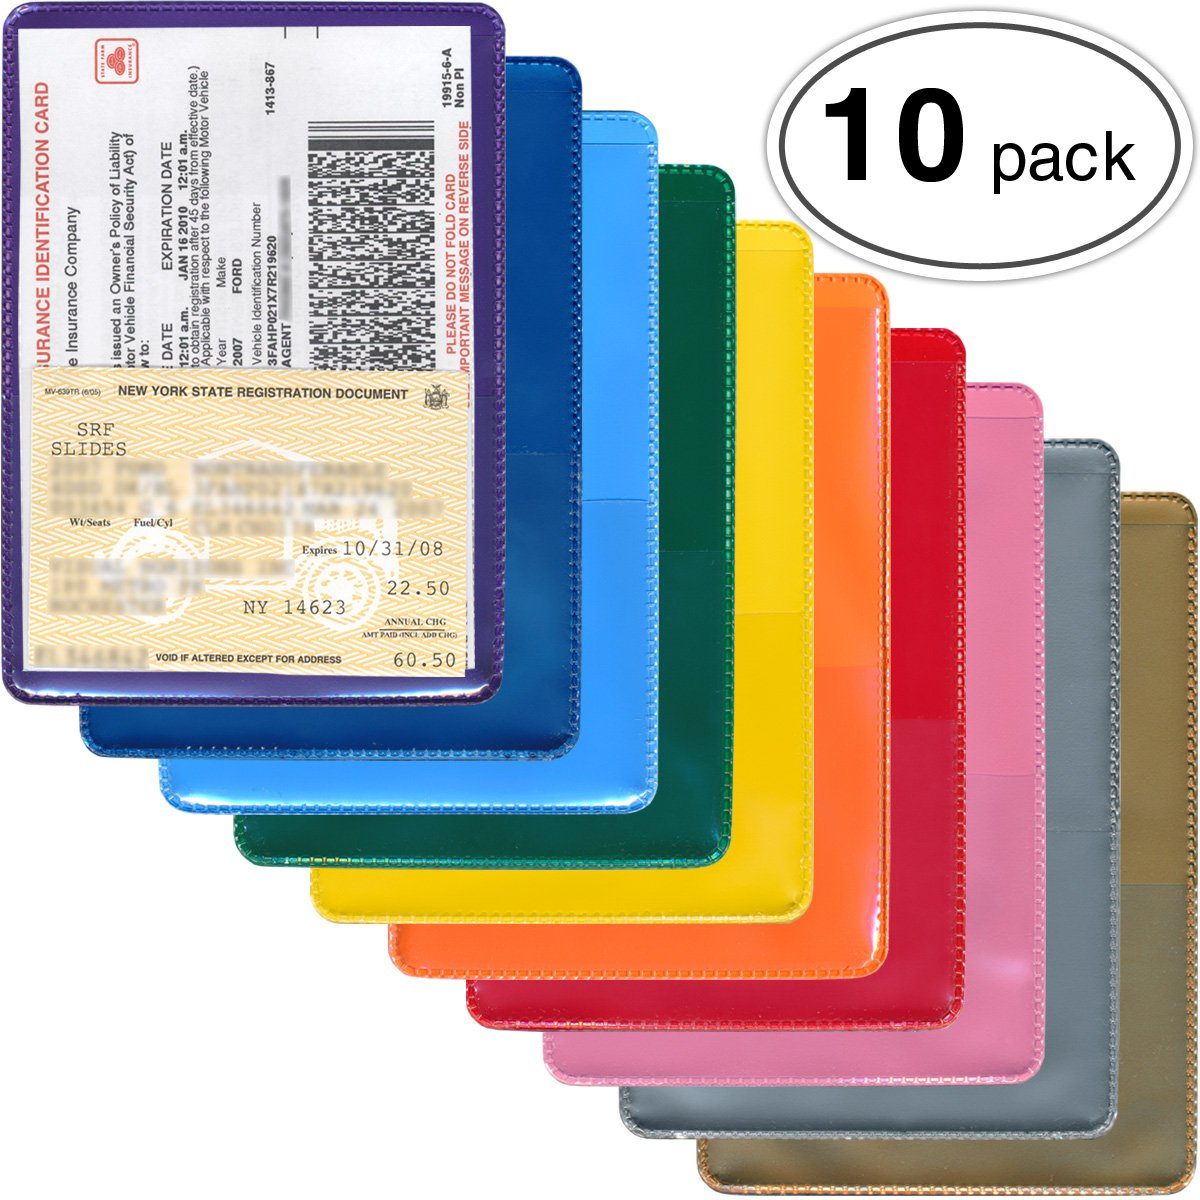 StoreSMART - Auto Insurance & ID Card Holders - Variety 10-PACK - RFS20VP StoreSMART®